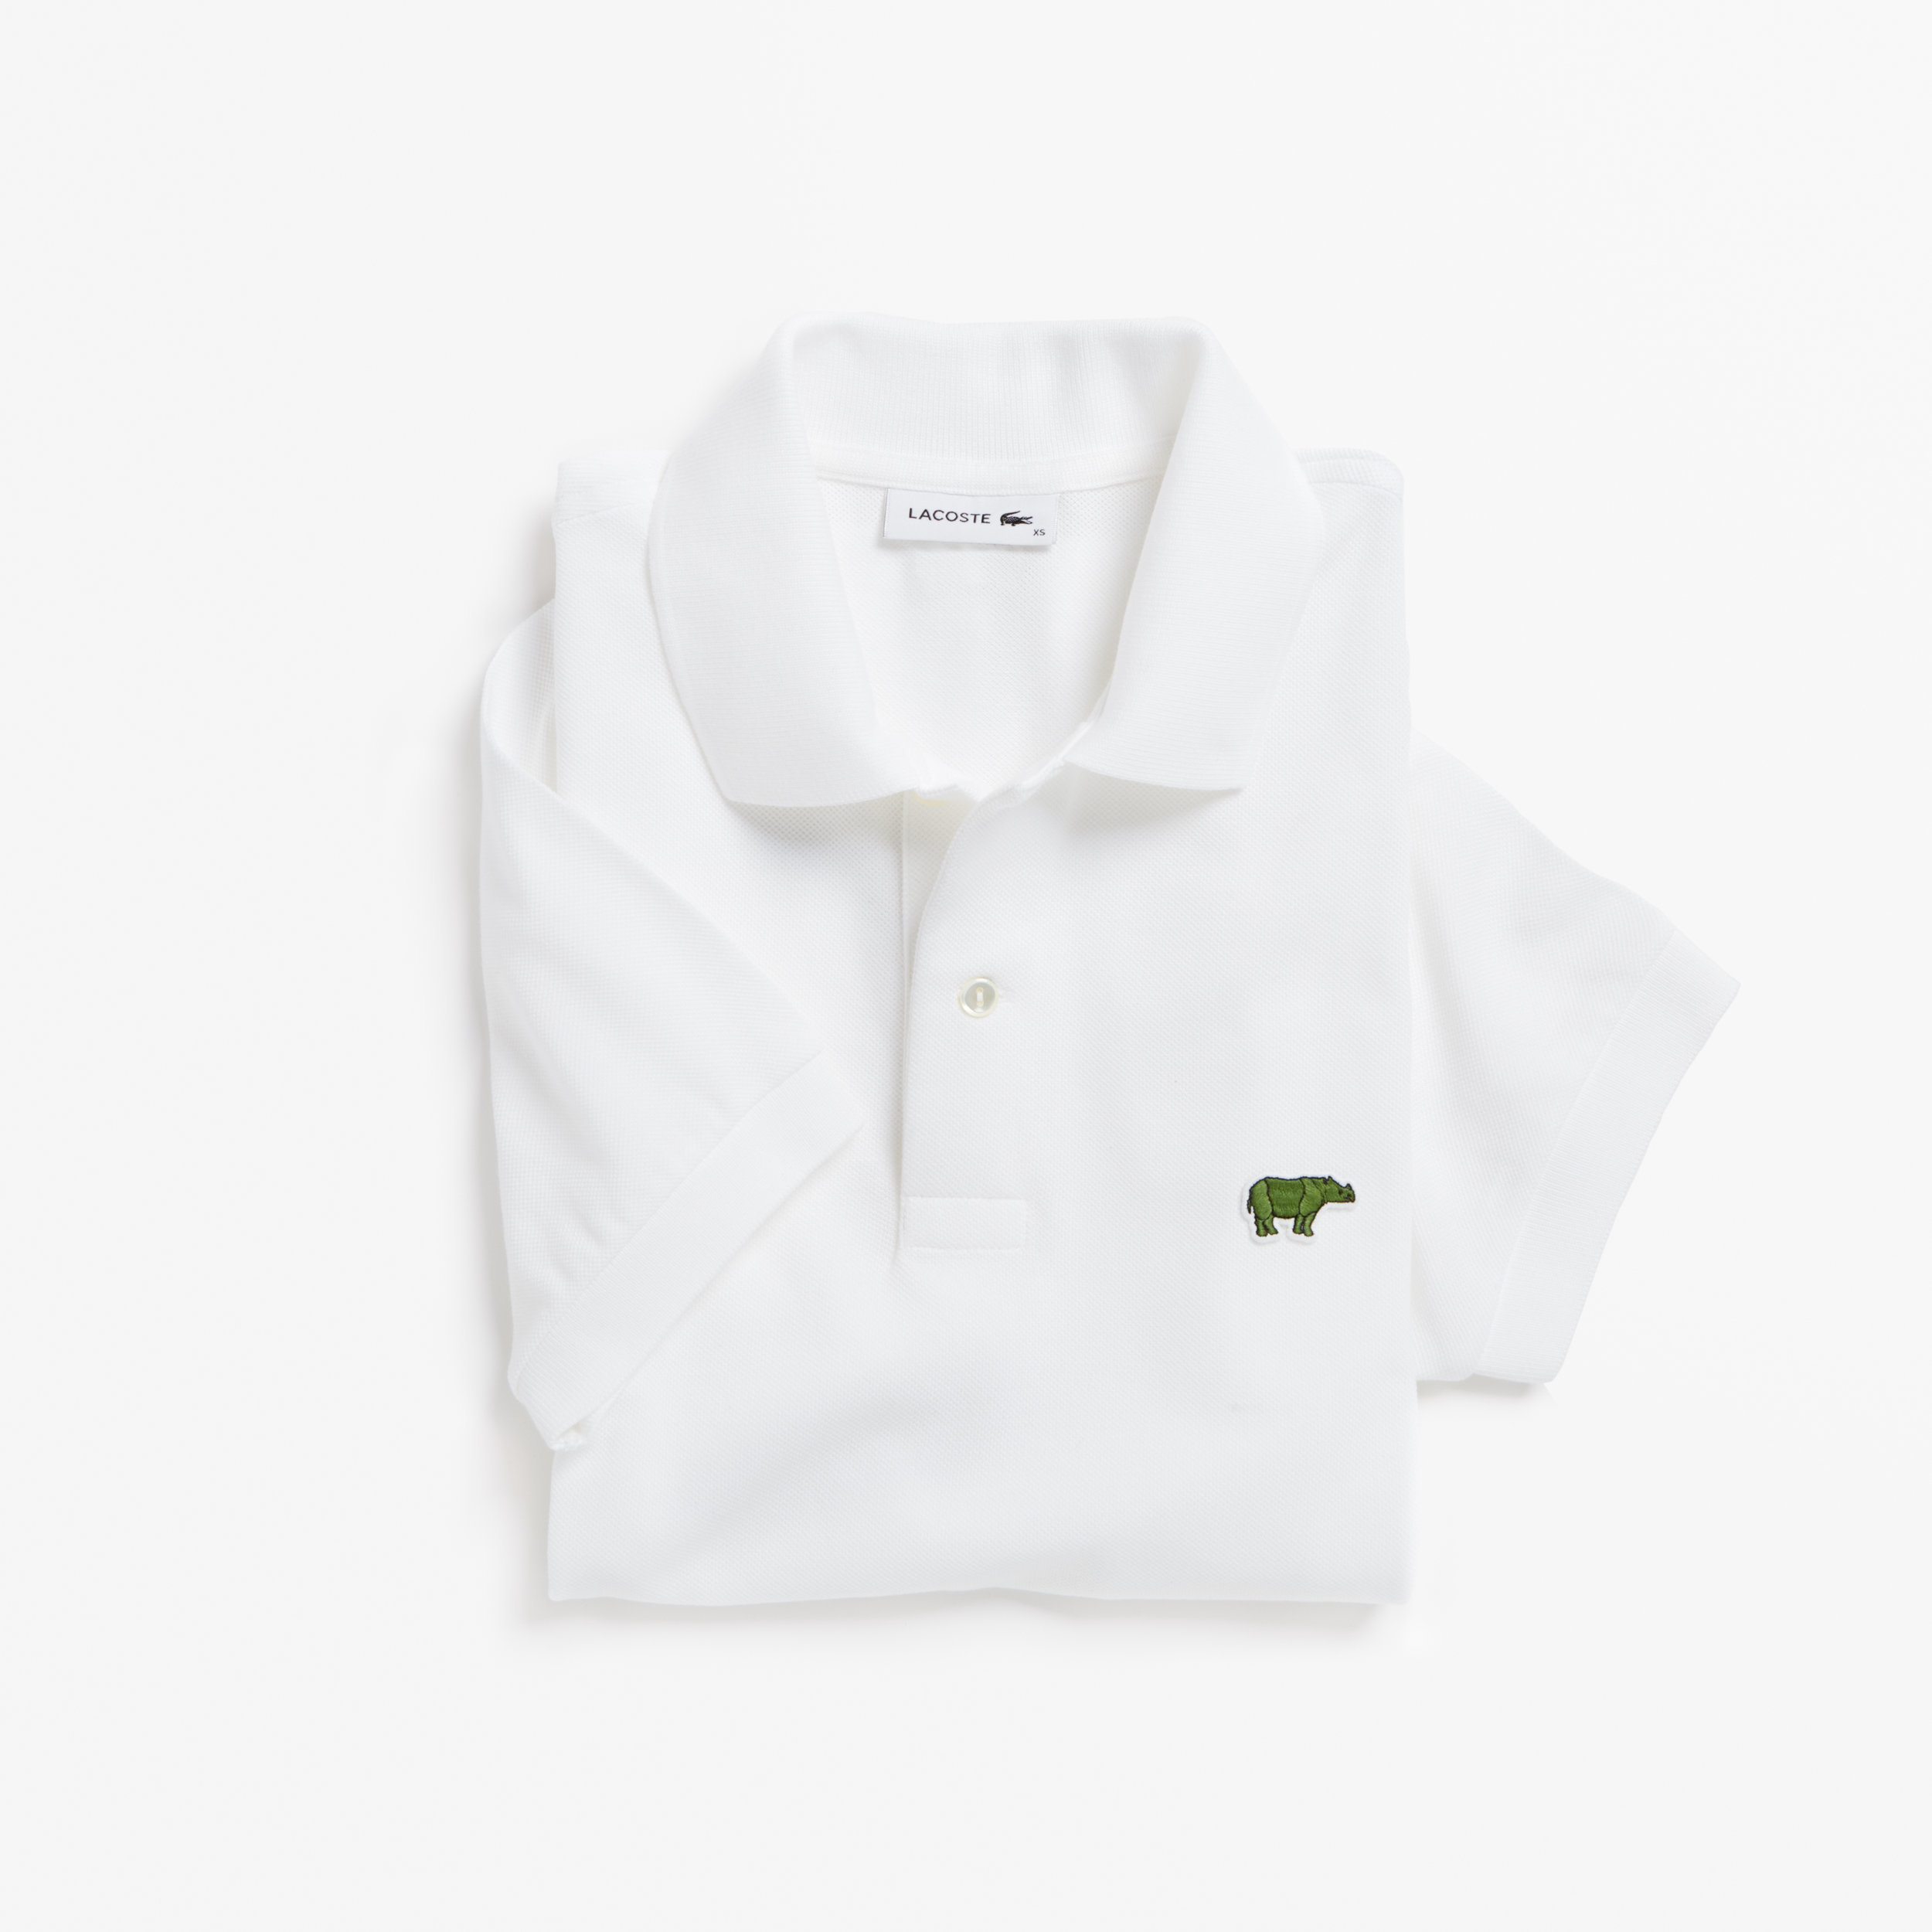 04. LACOSTE X SAVE OUR SPECIES (UICN)_THE JAVAN RHINO_PH4653.jpg